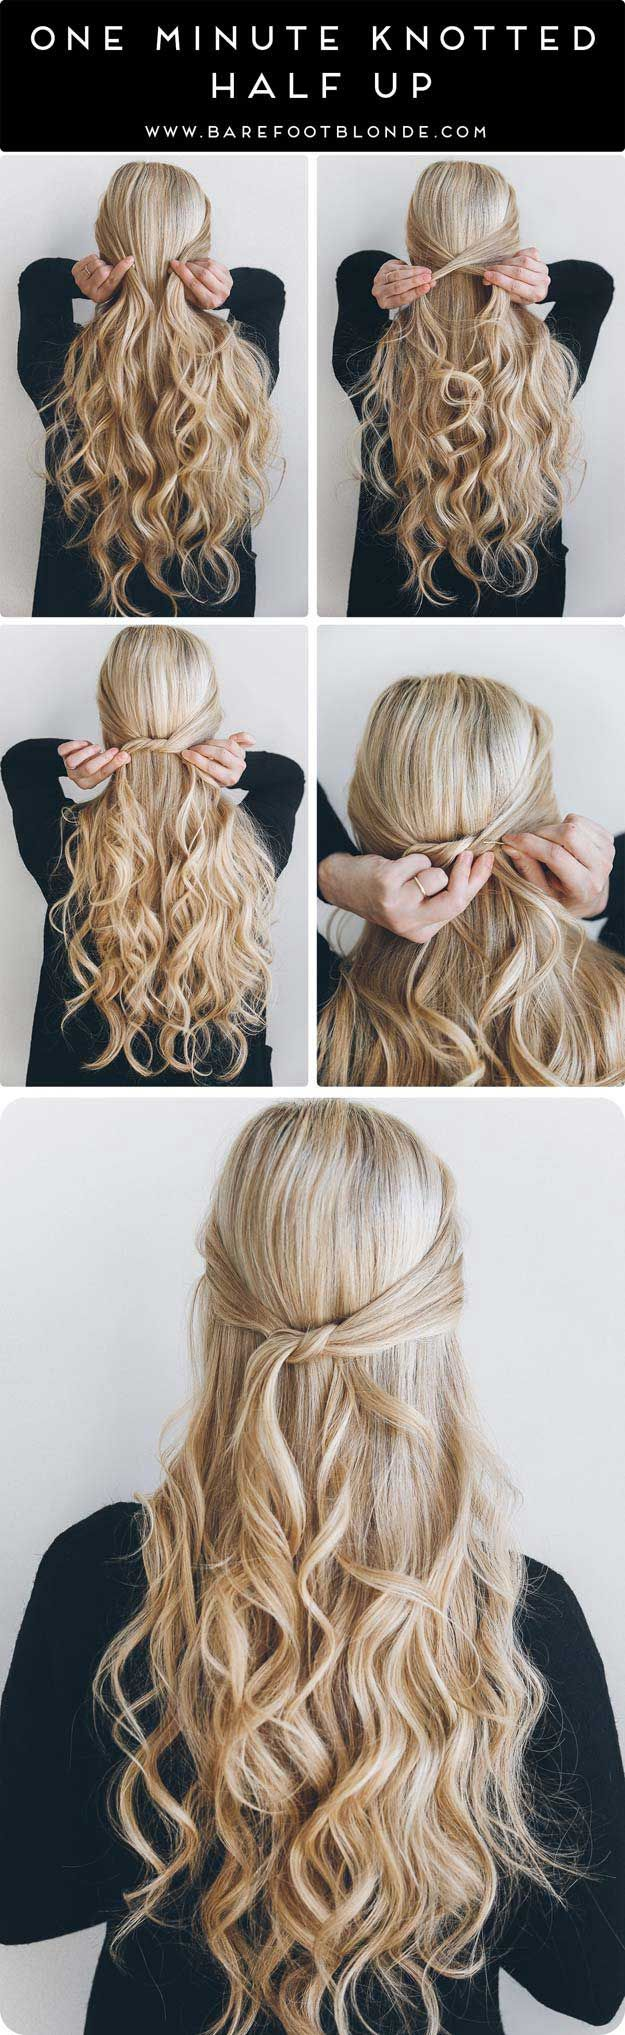 Amazing Half Up-Half Down Hairstyles For Long Hair - One Minute Knotted Half Up - Easy Step By Step Tutorials And Tips For Hair Styles And Hair Ideas For Prom, For The Bridesmaid, For Homecoming, Wedding, And Bride. Try An Updo Or A Half Up Half Down Hair http://shedonteversleep.tumblr.com/post/157435083193/more